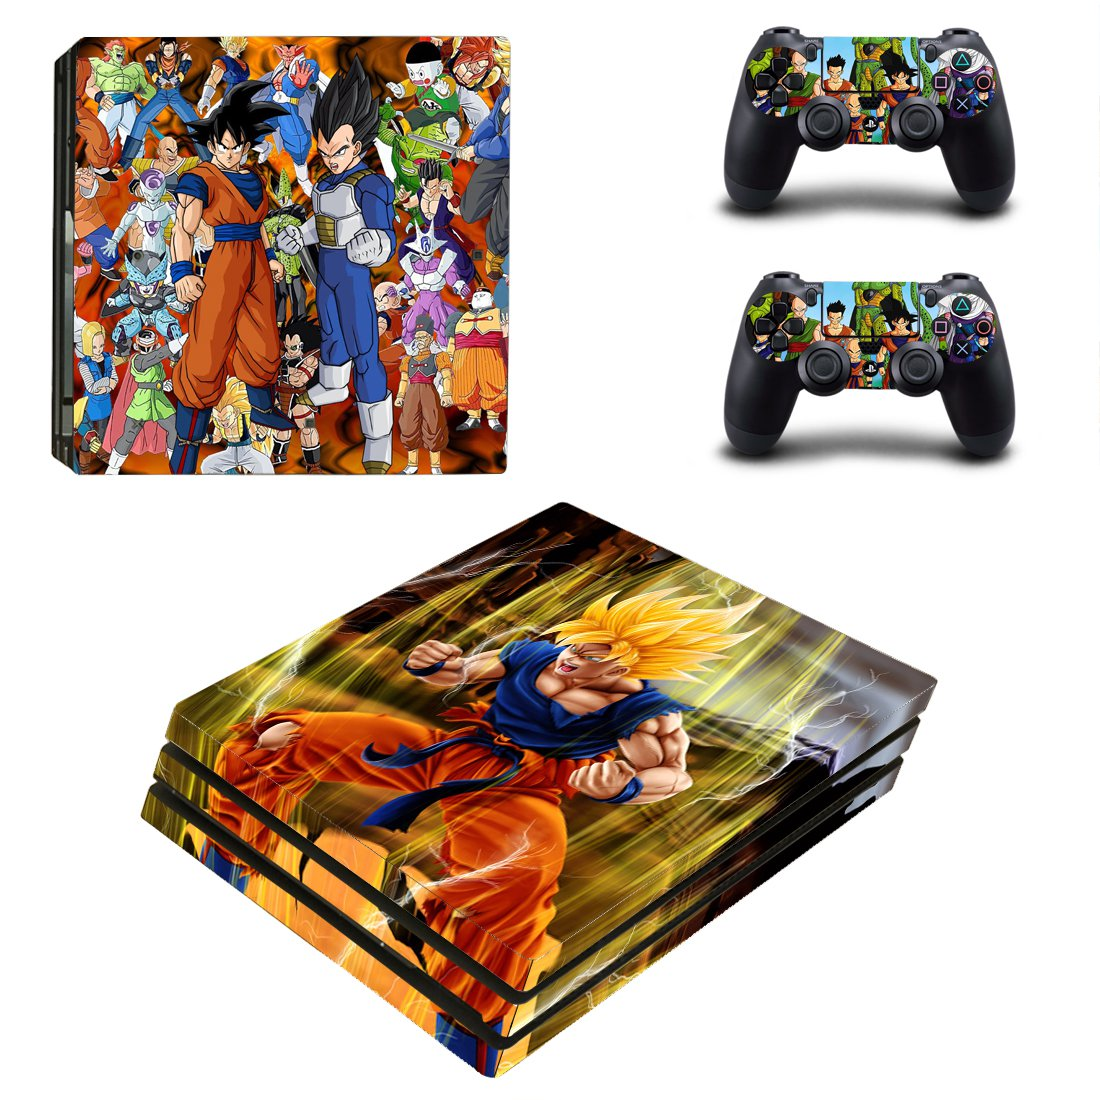 Dragon Ball Z PS4 Pro Skin Sticker Decals PS4 Console And Controllers Protect Your PS4